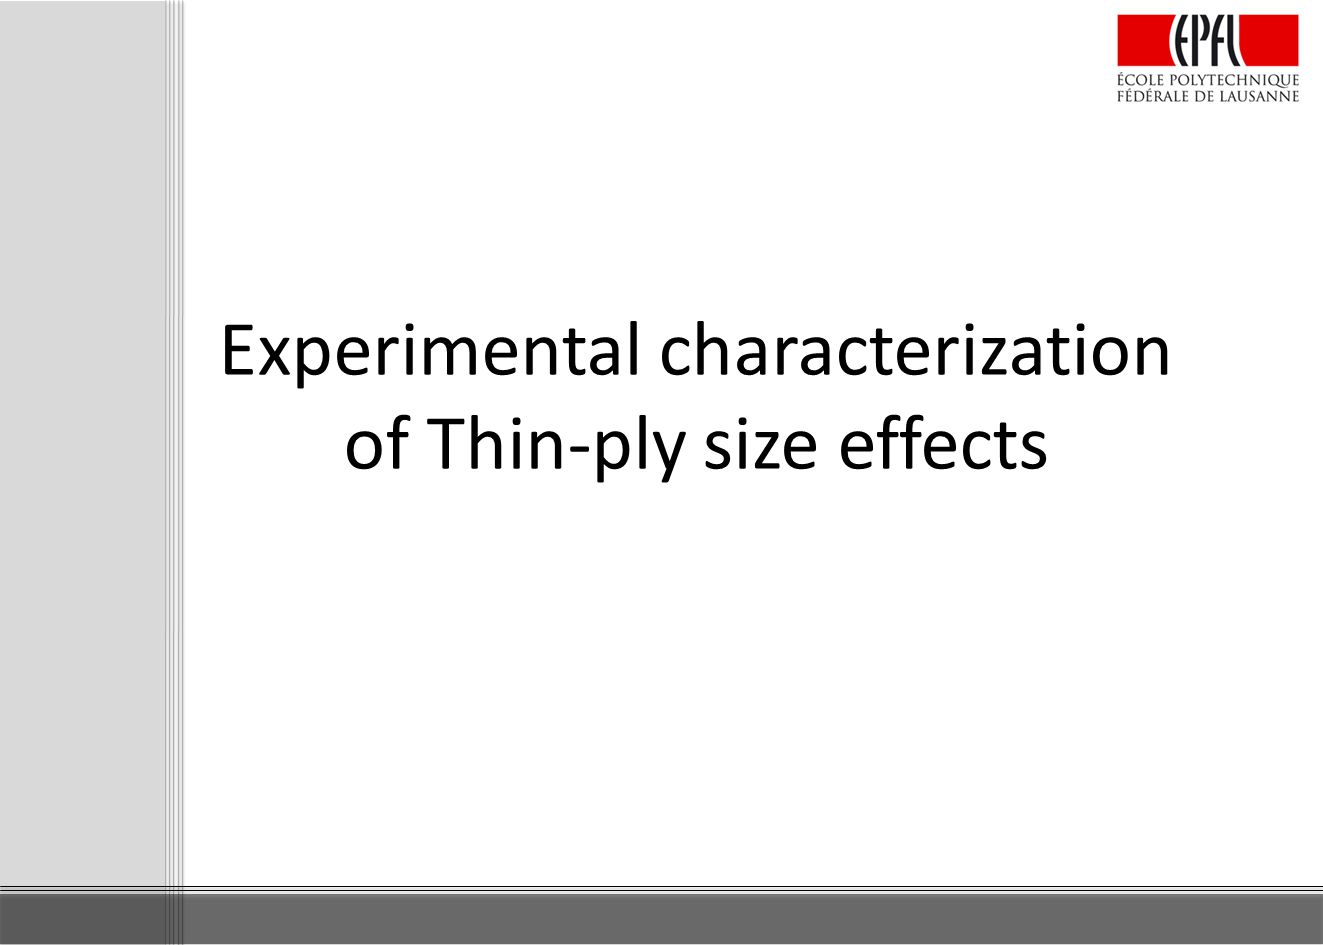 Experimental characterization of Thin-ply size effects